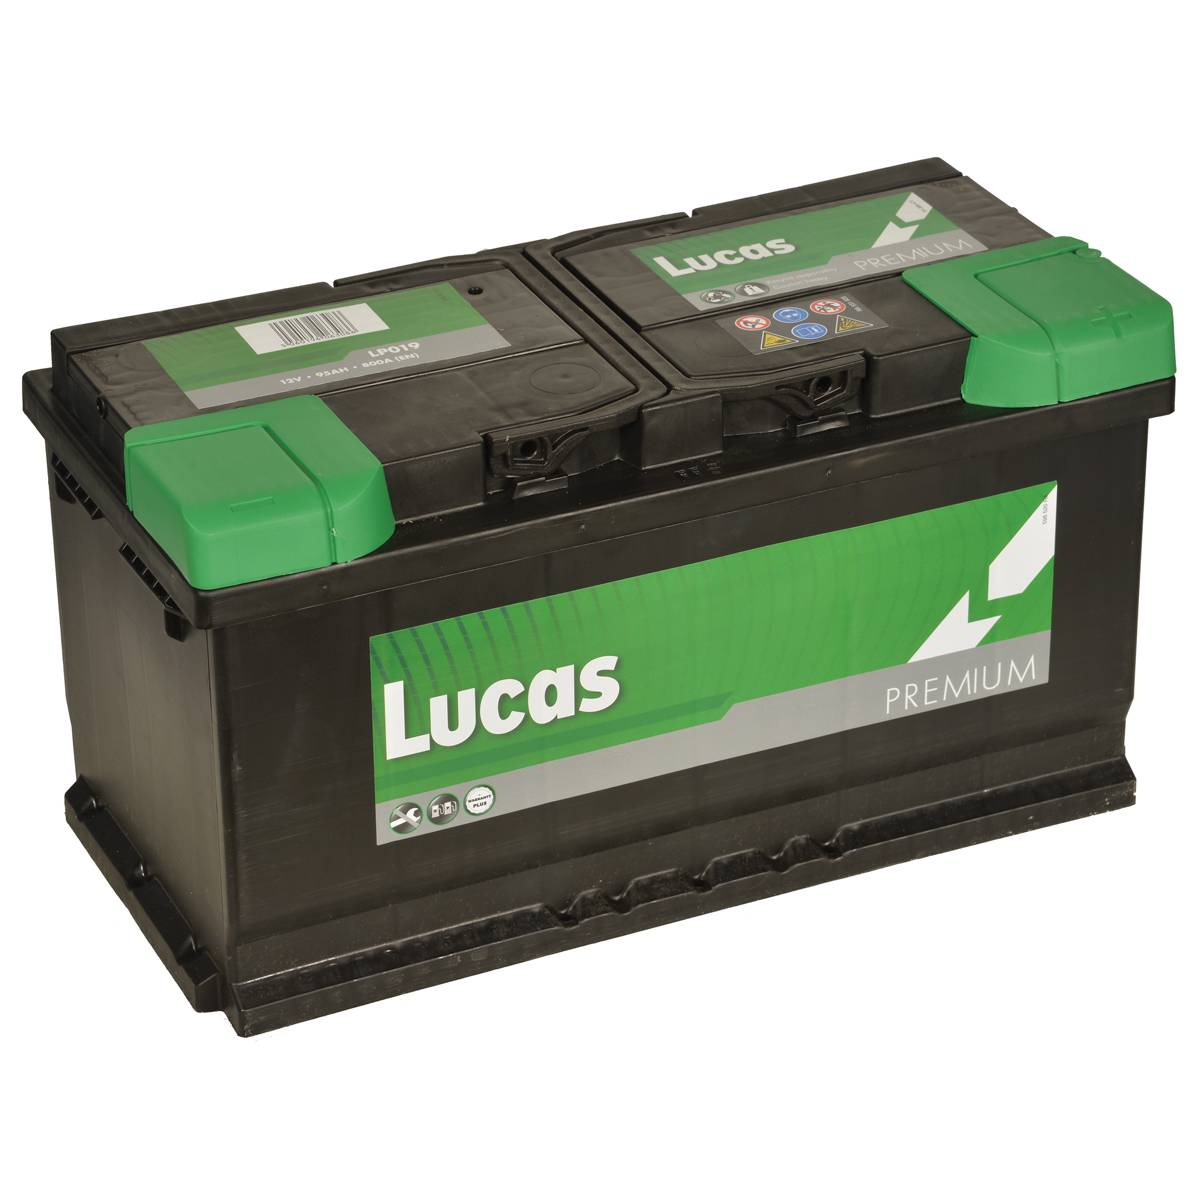 Lucas Premium LP019 Car Battery